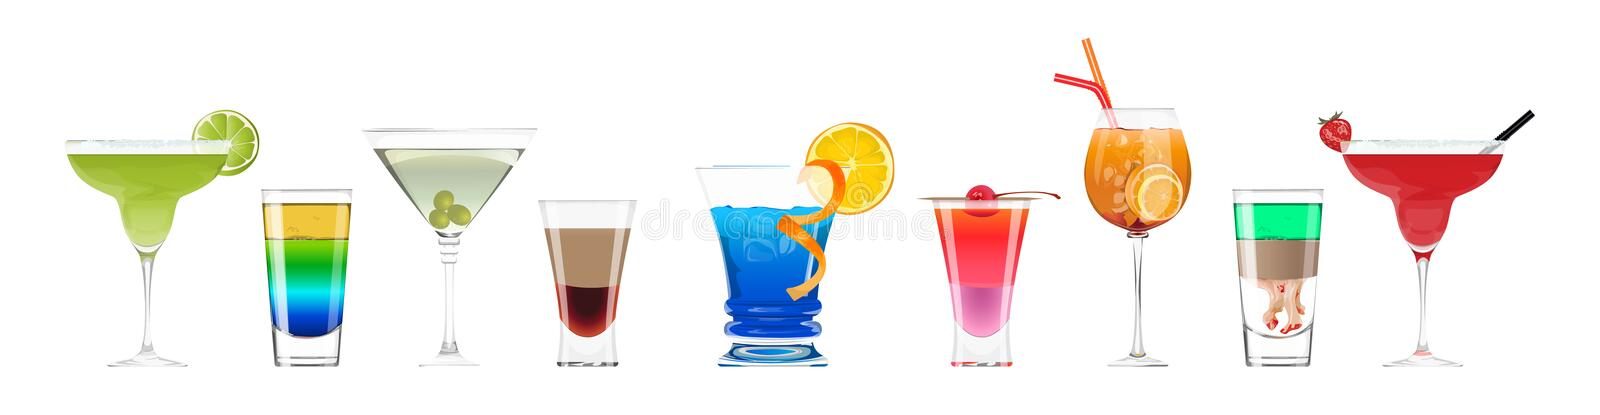 Alcohol cocktails set. Alcohol cocktails set on white background. Colorful drinks with fruits and decorations stock illustration